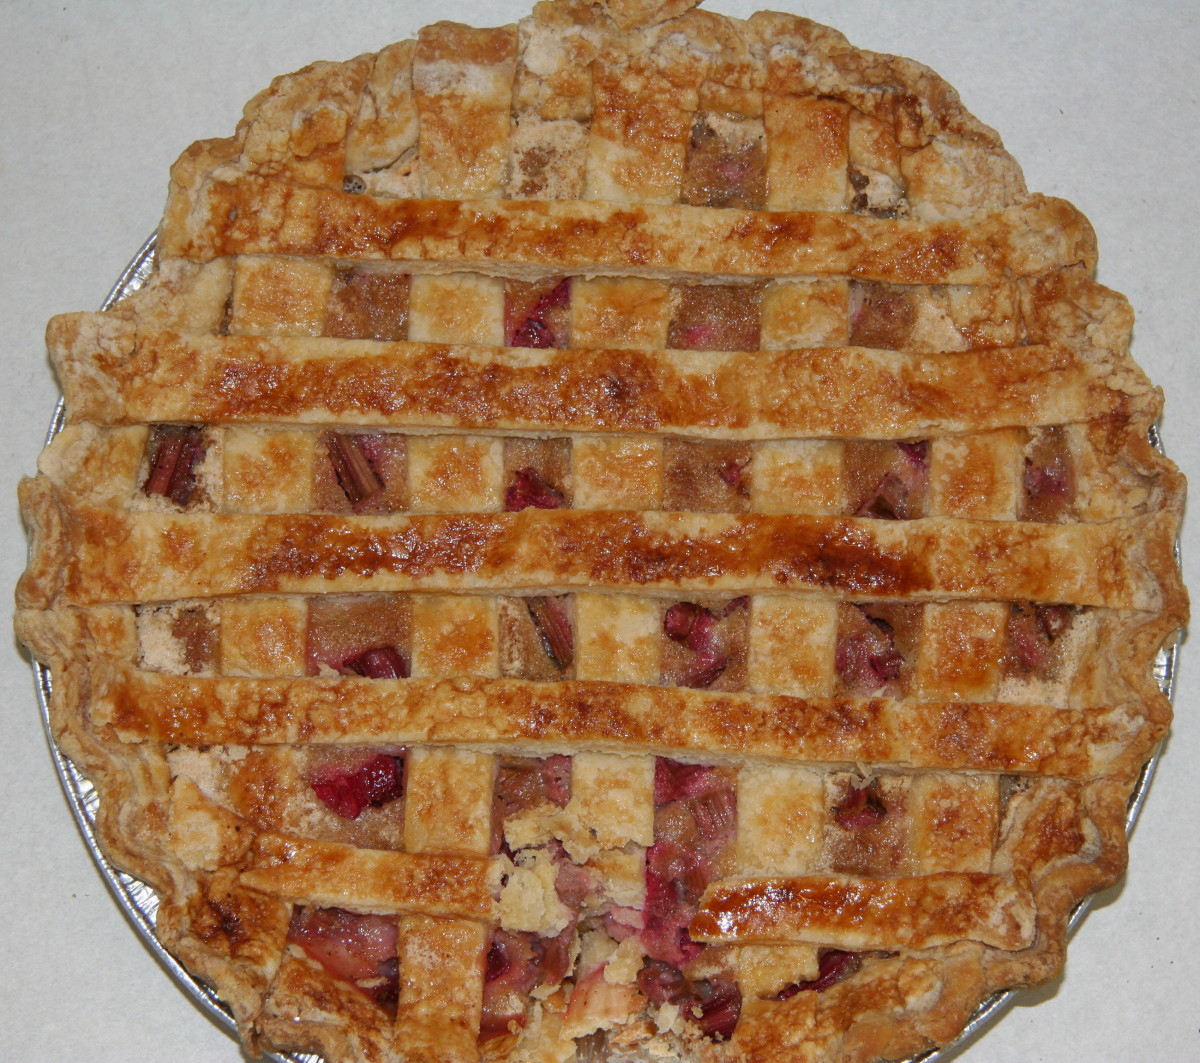 The Best Rhubarb Pie Recipe - Rhubarb Cream Pie